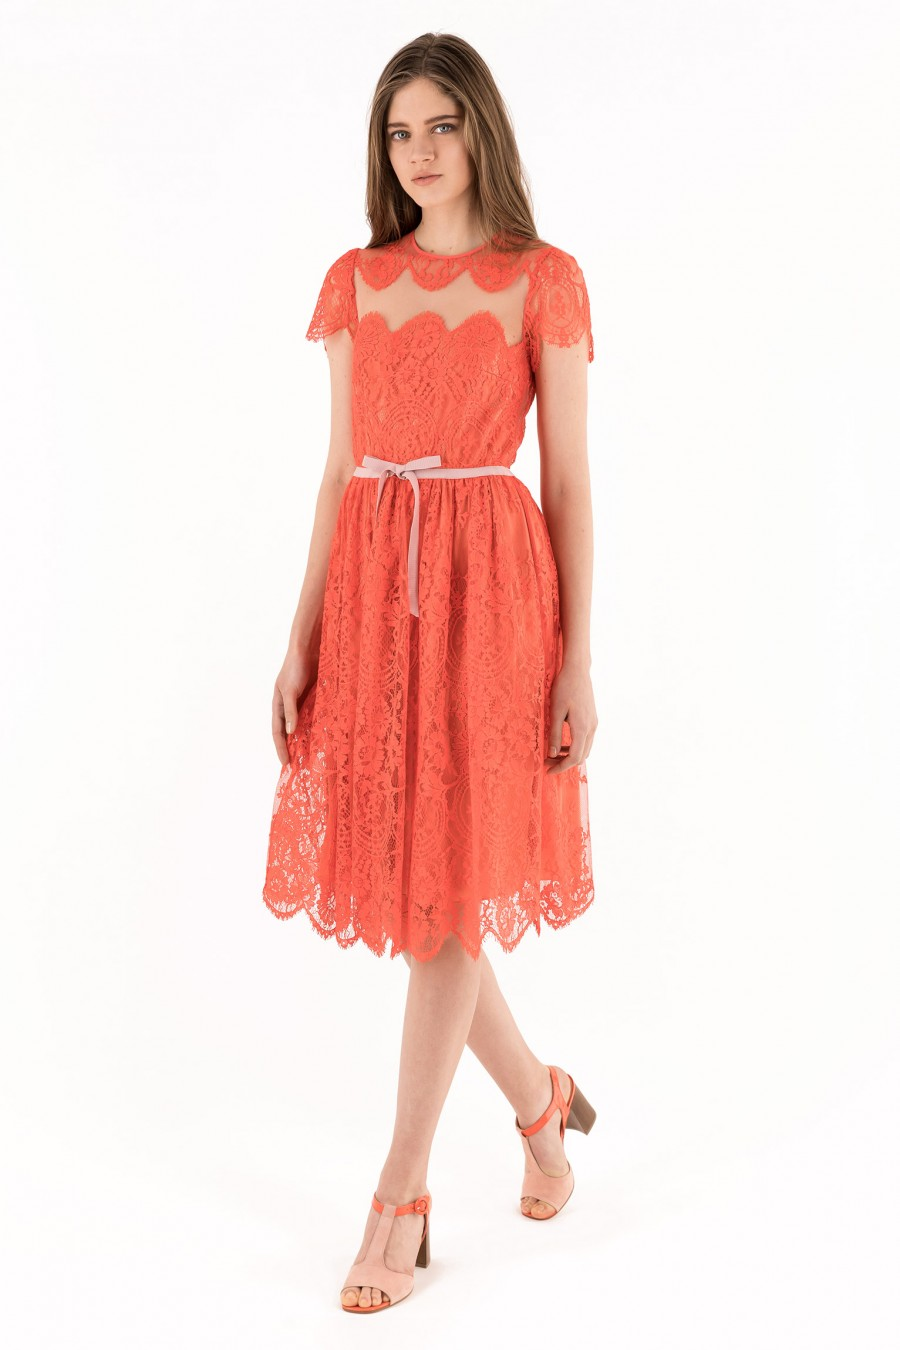 Neon red lace dress